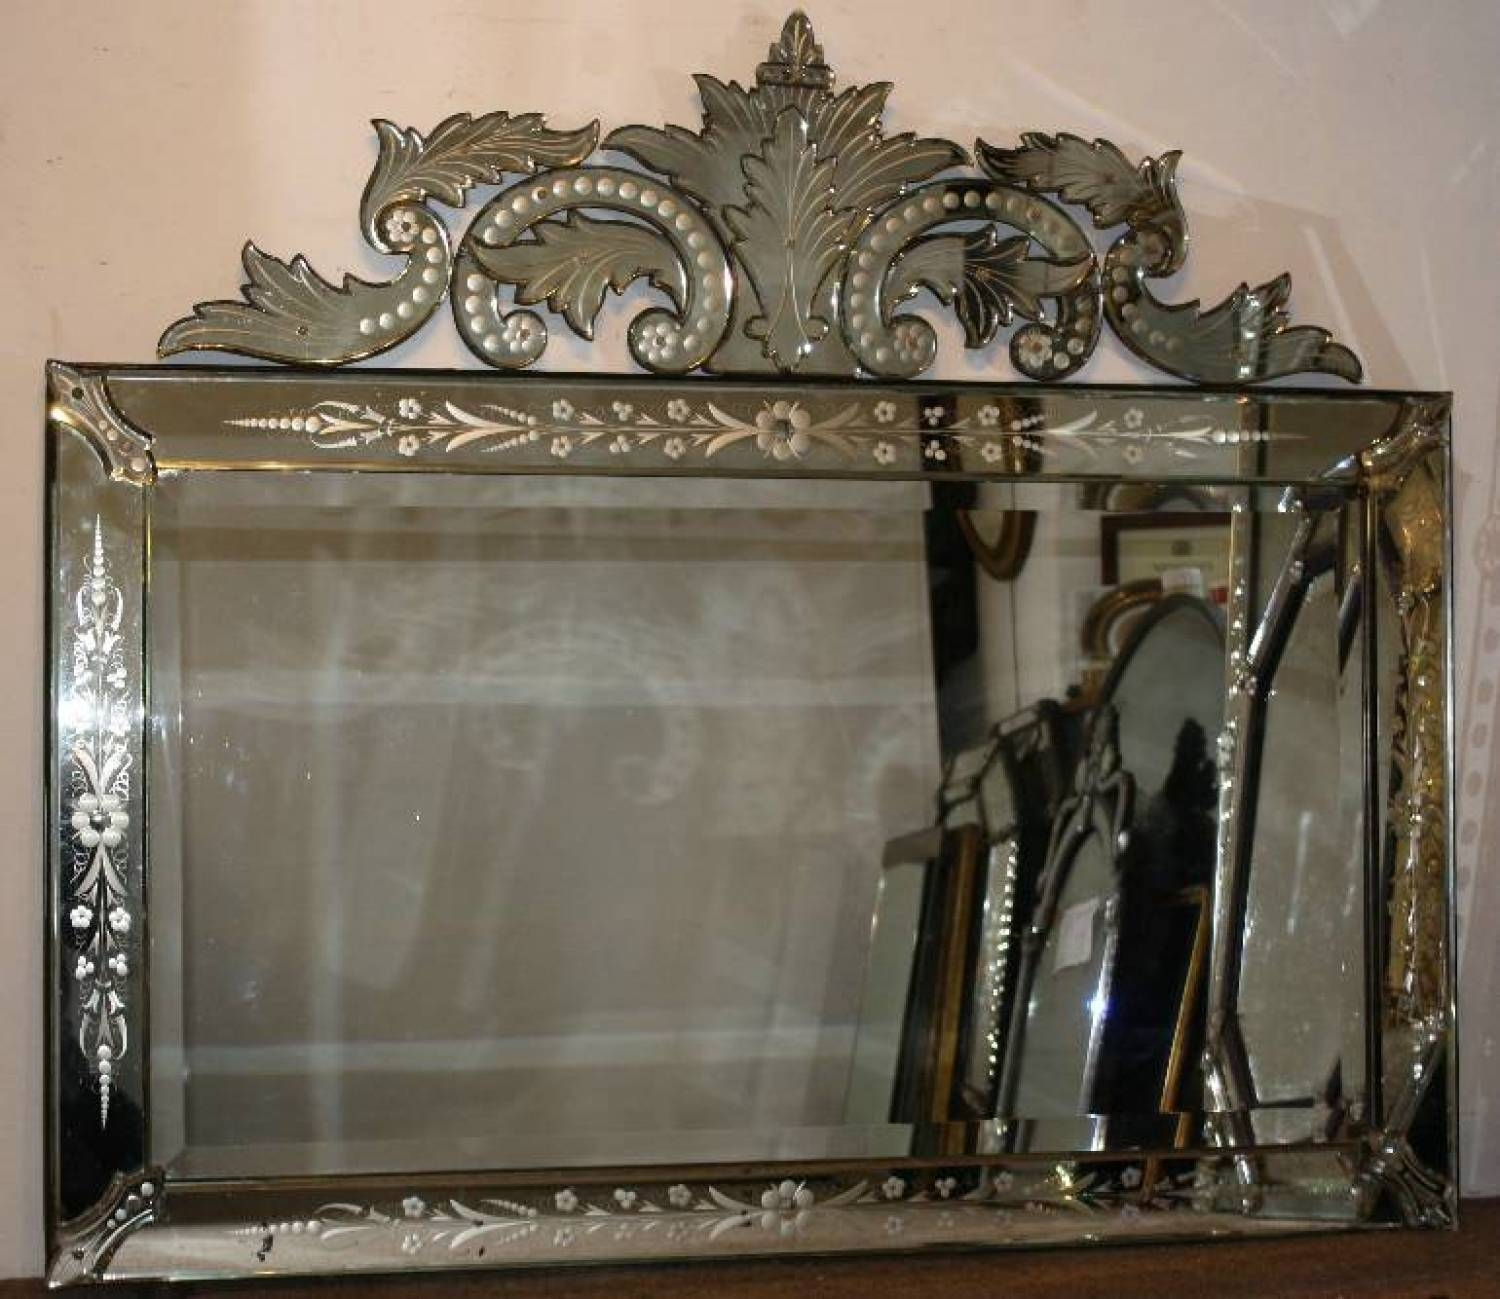 Interior: Vintage Venetian Mirror For Classic Interior Decor within Venetian Style Wall Mirrors (Image 10 of 25)